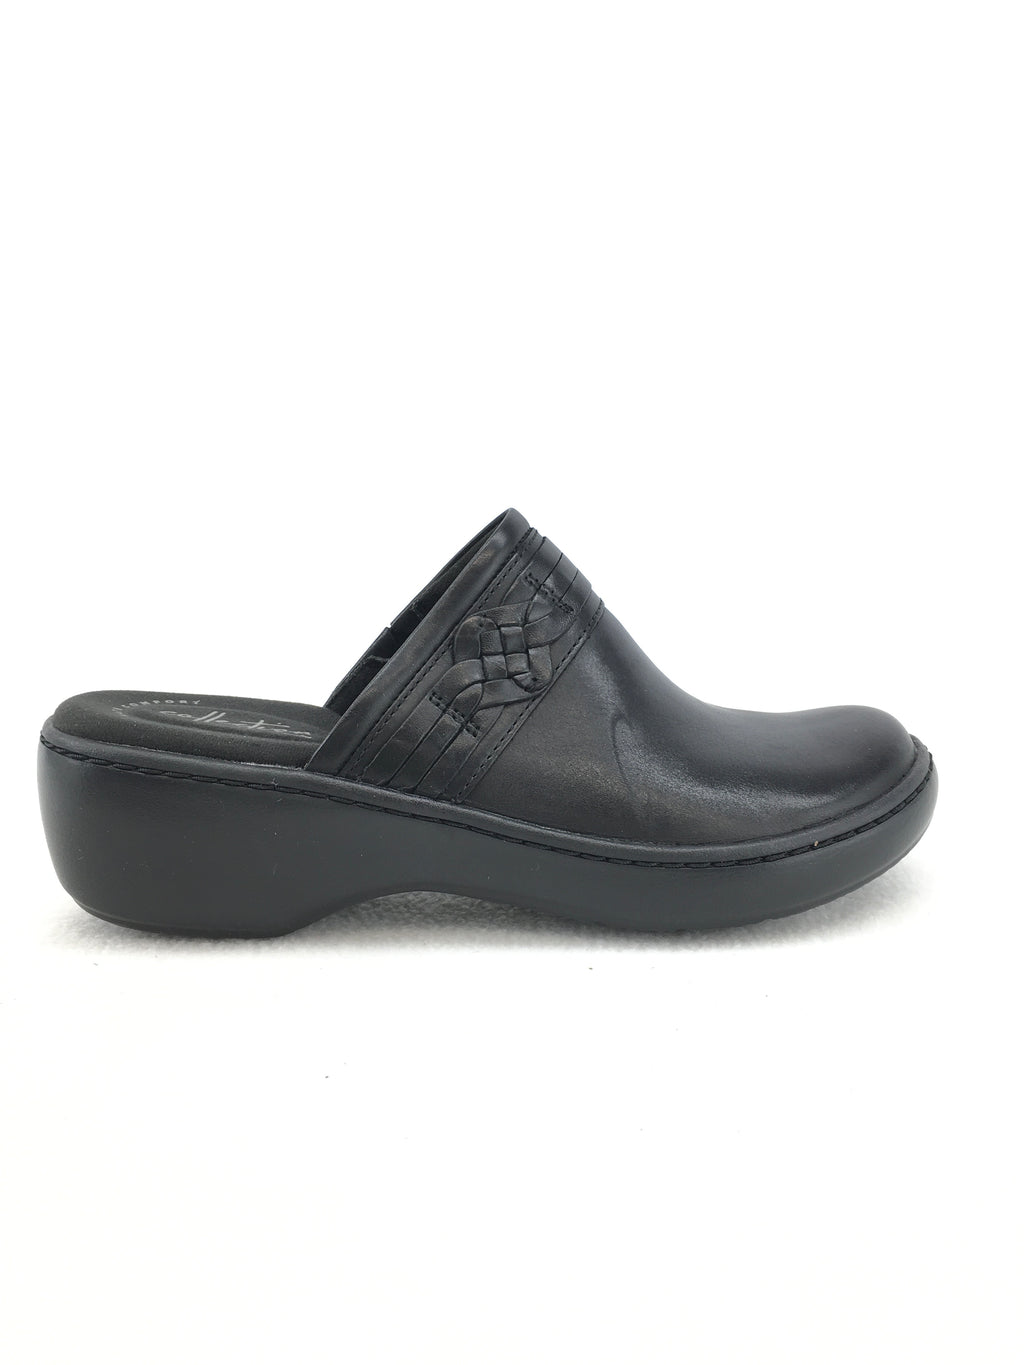 Collection by Clarks Comfort Mules Size 7M